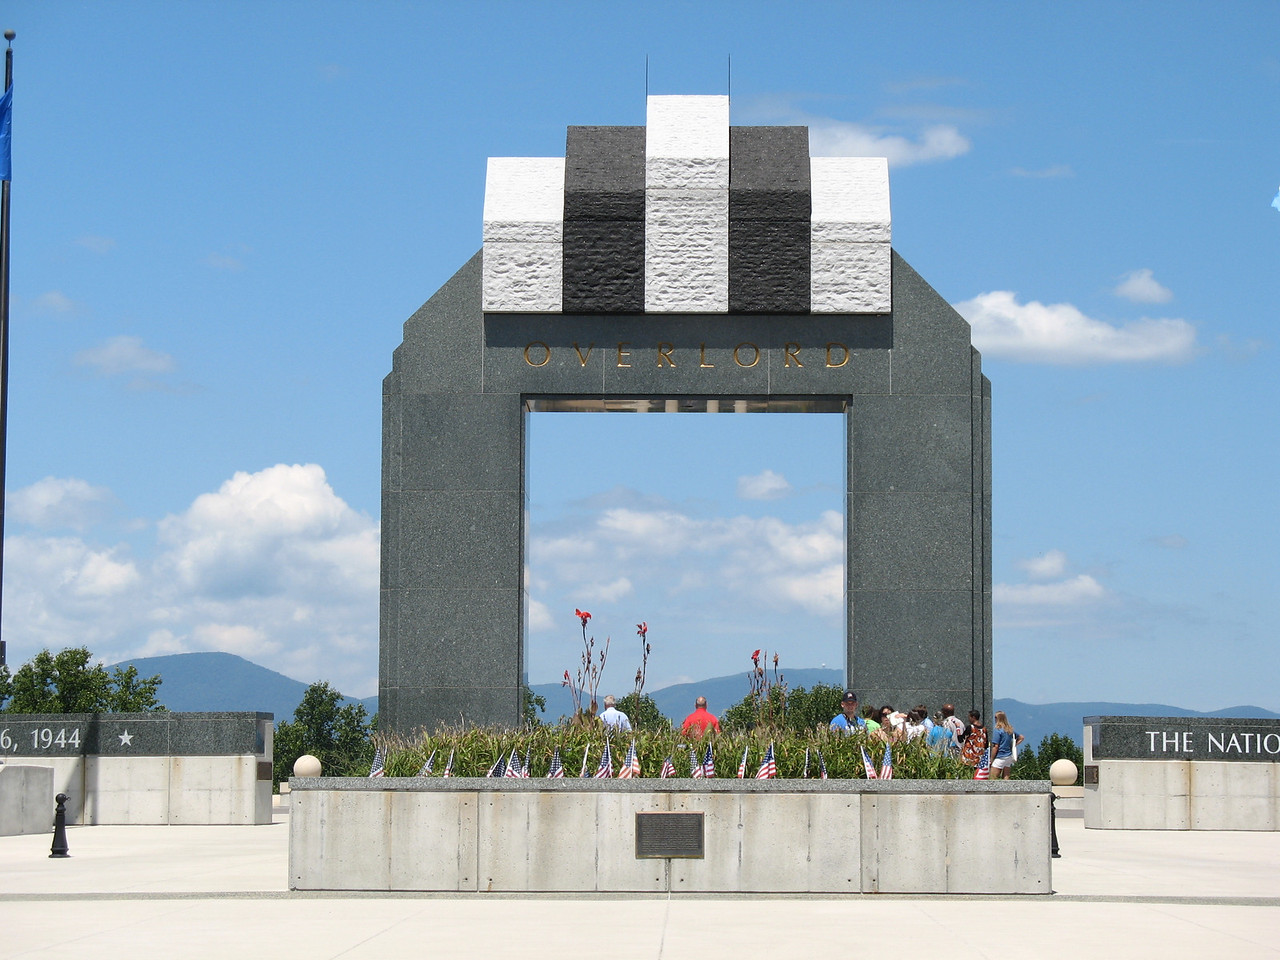 Victory Arch - This monument is 44 and 1/2 feet high and stands above Victory Plaza. The colors on the upper part of the monument symbolize the markings of Allied aircraft during the invasion.